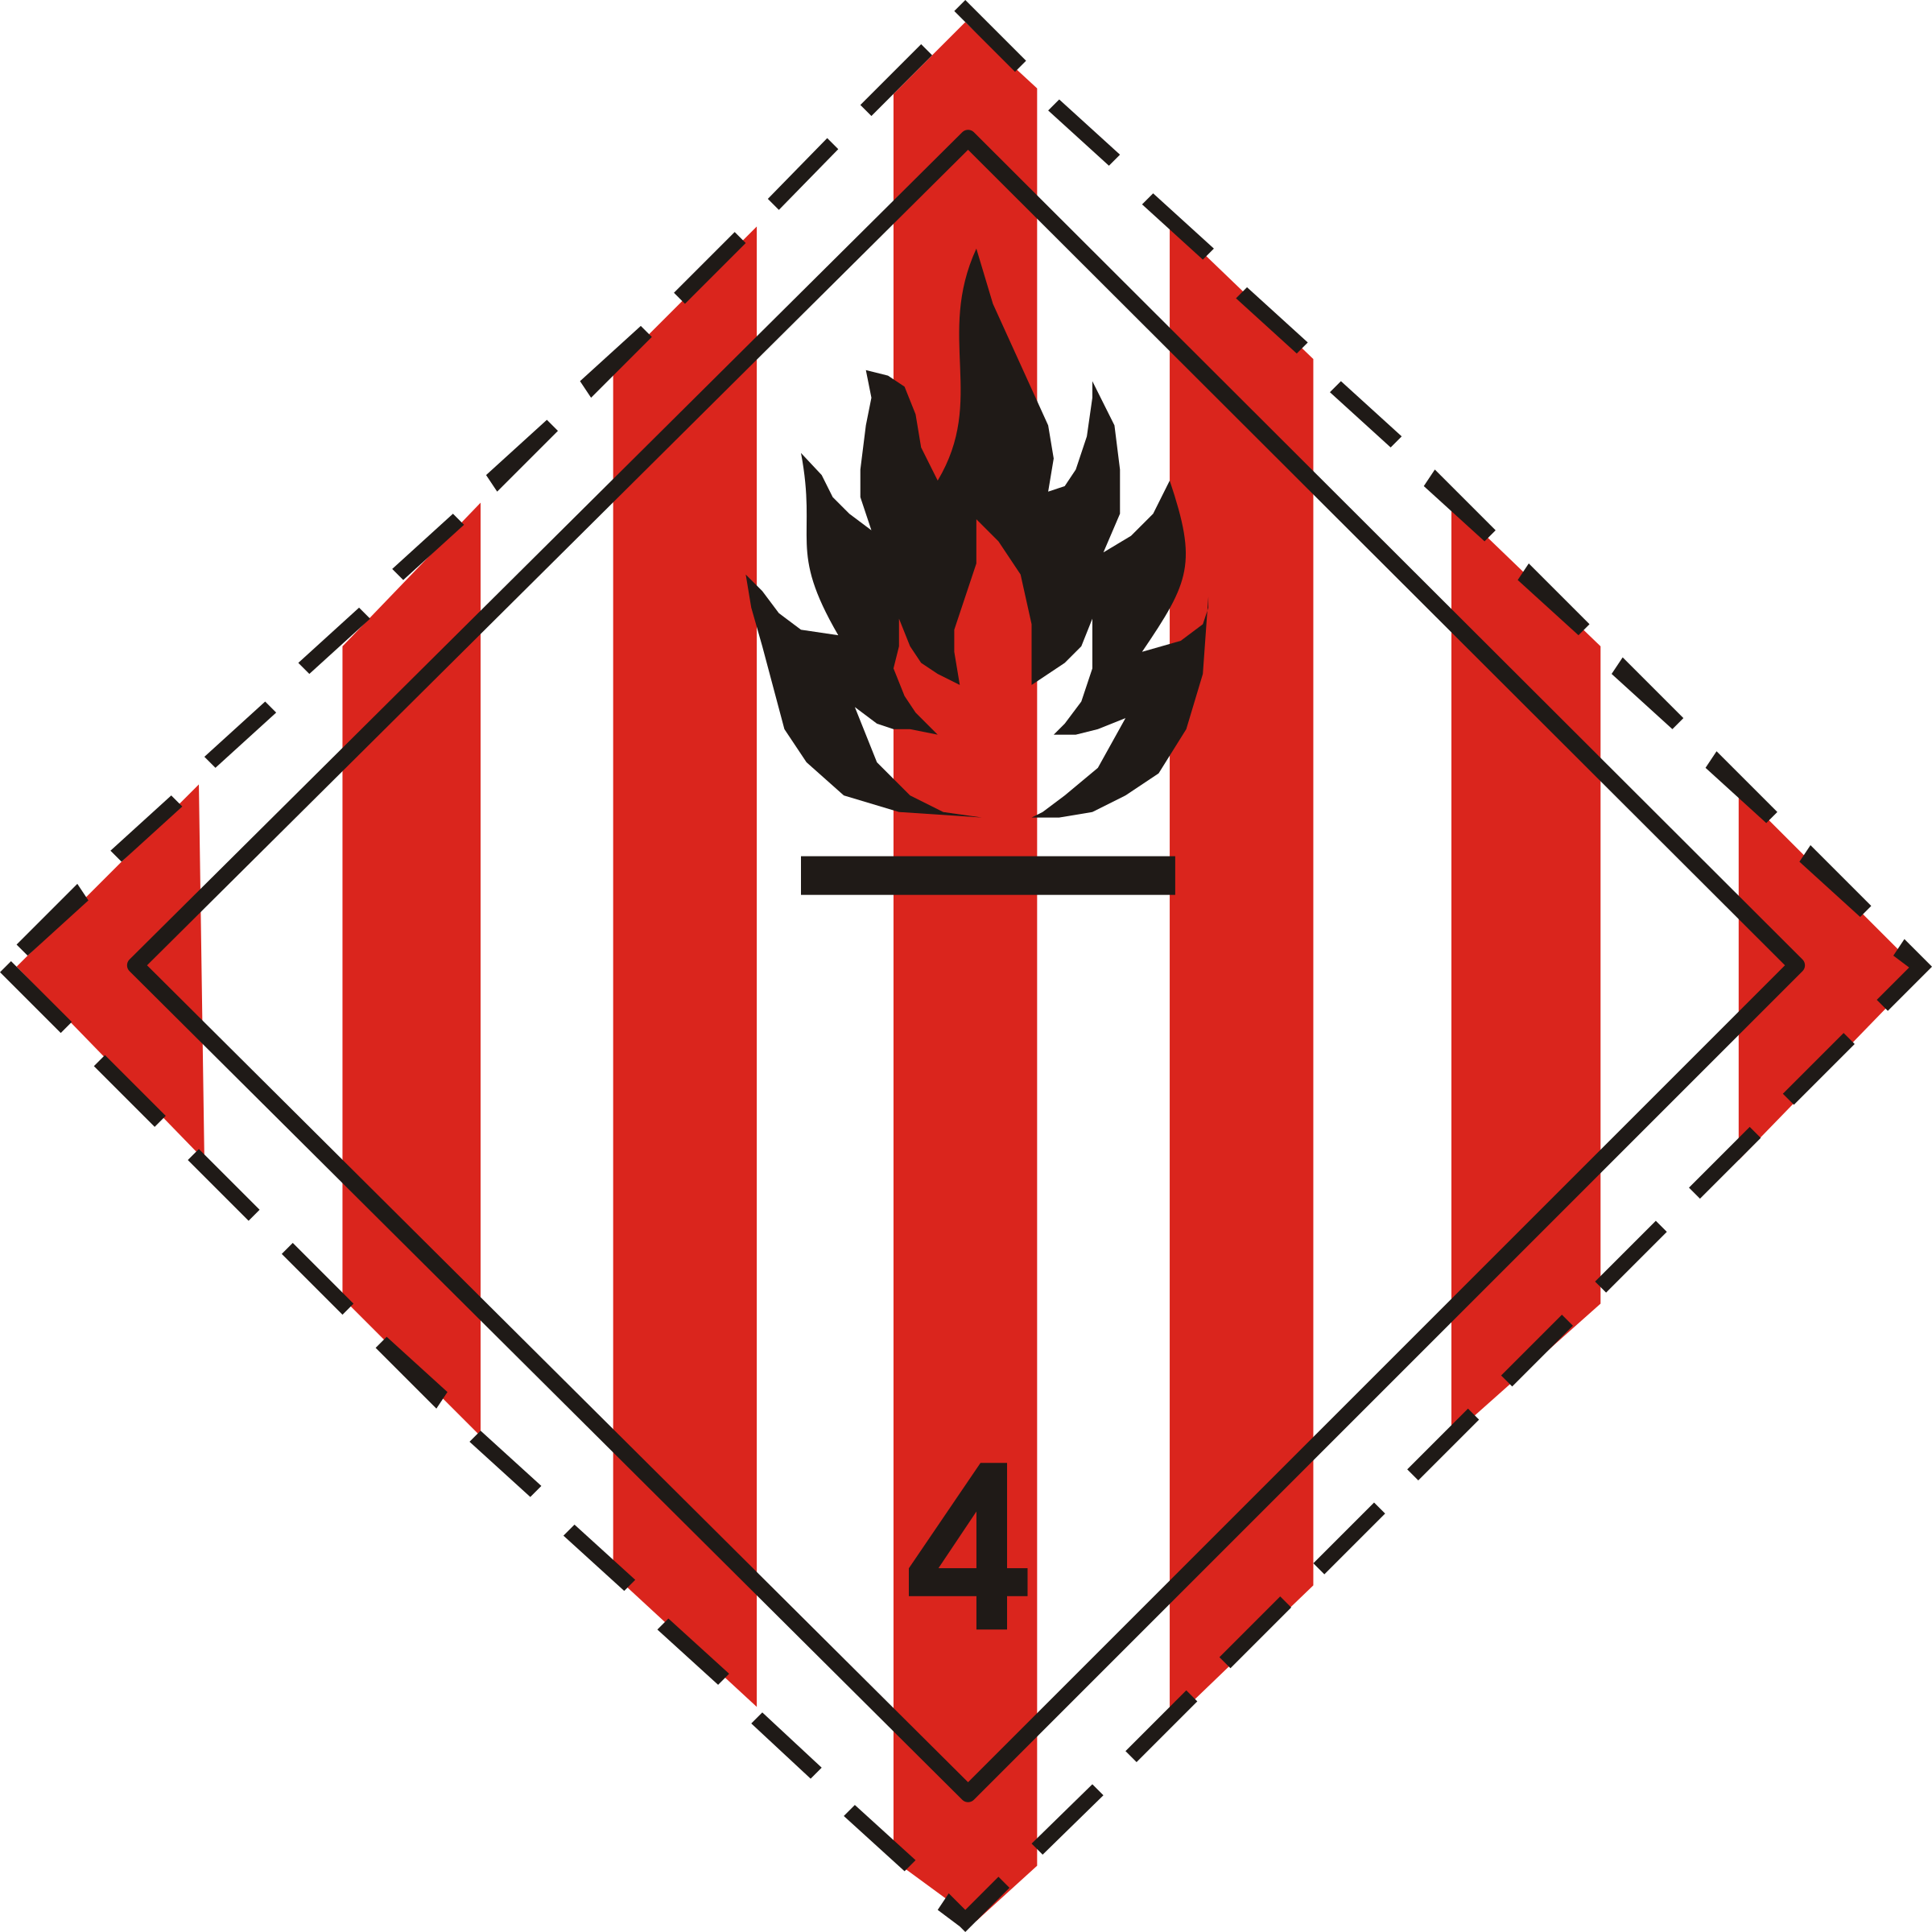 ADR pictogram 4.1-Flammable solids by Juhele